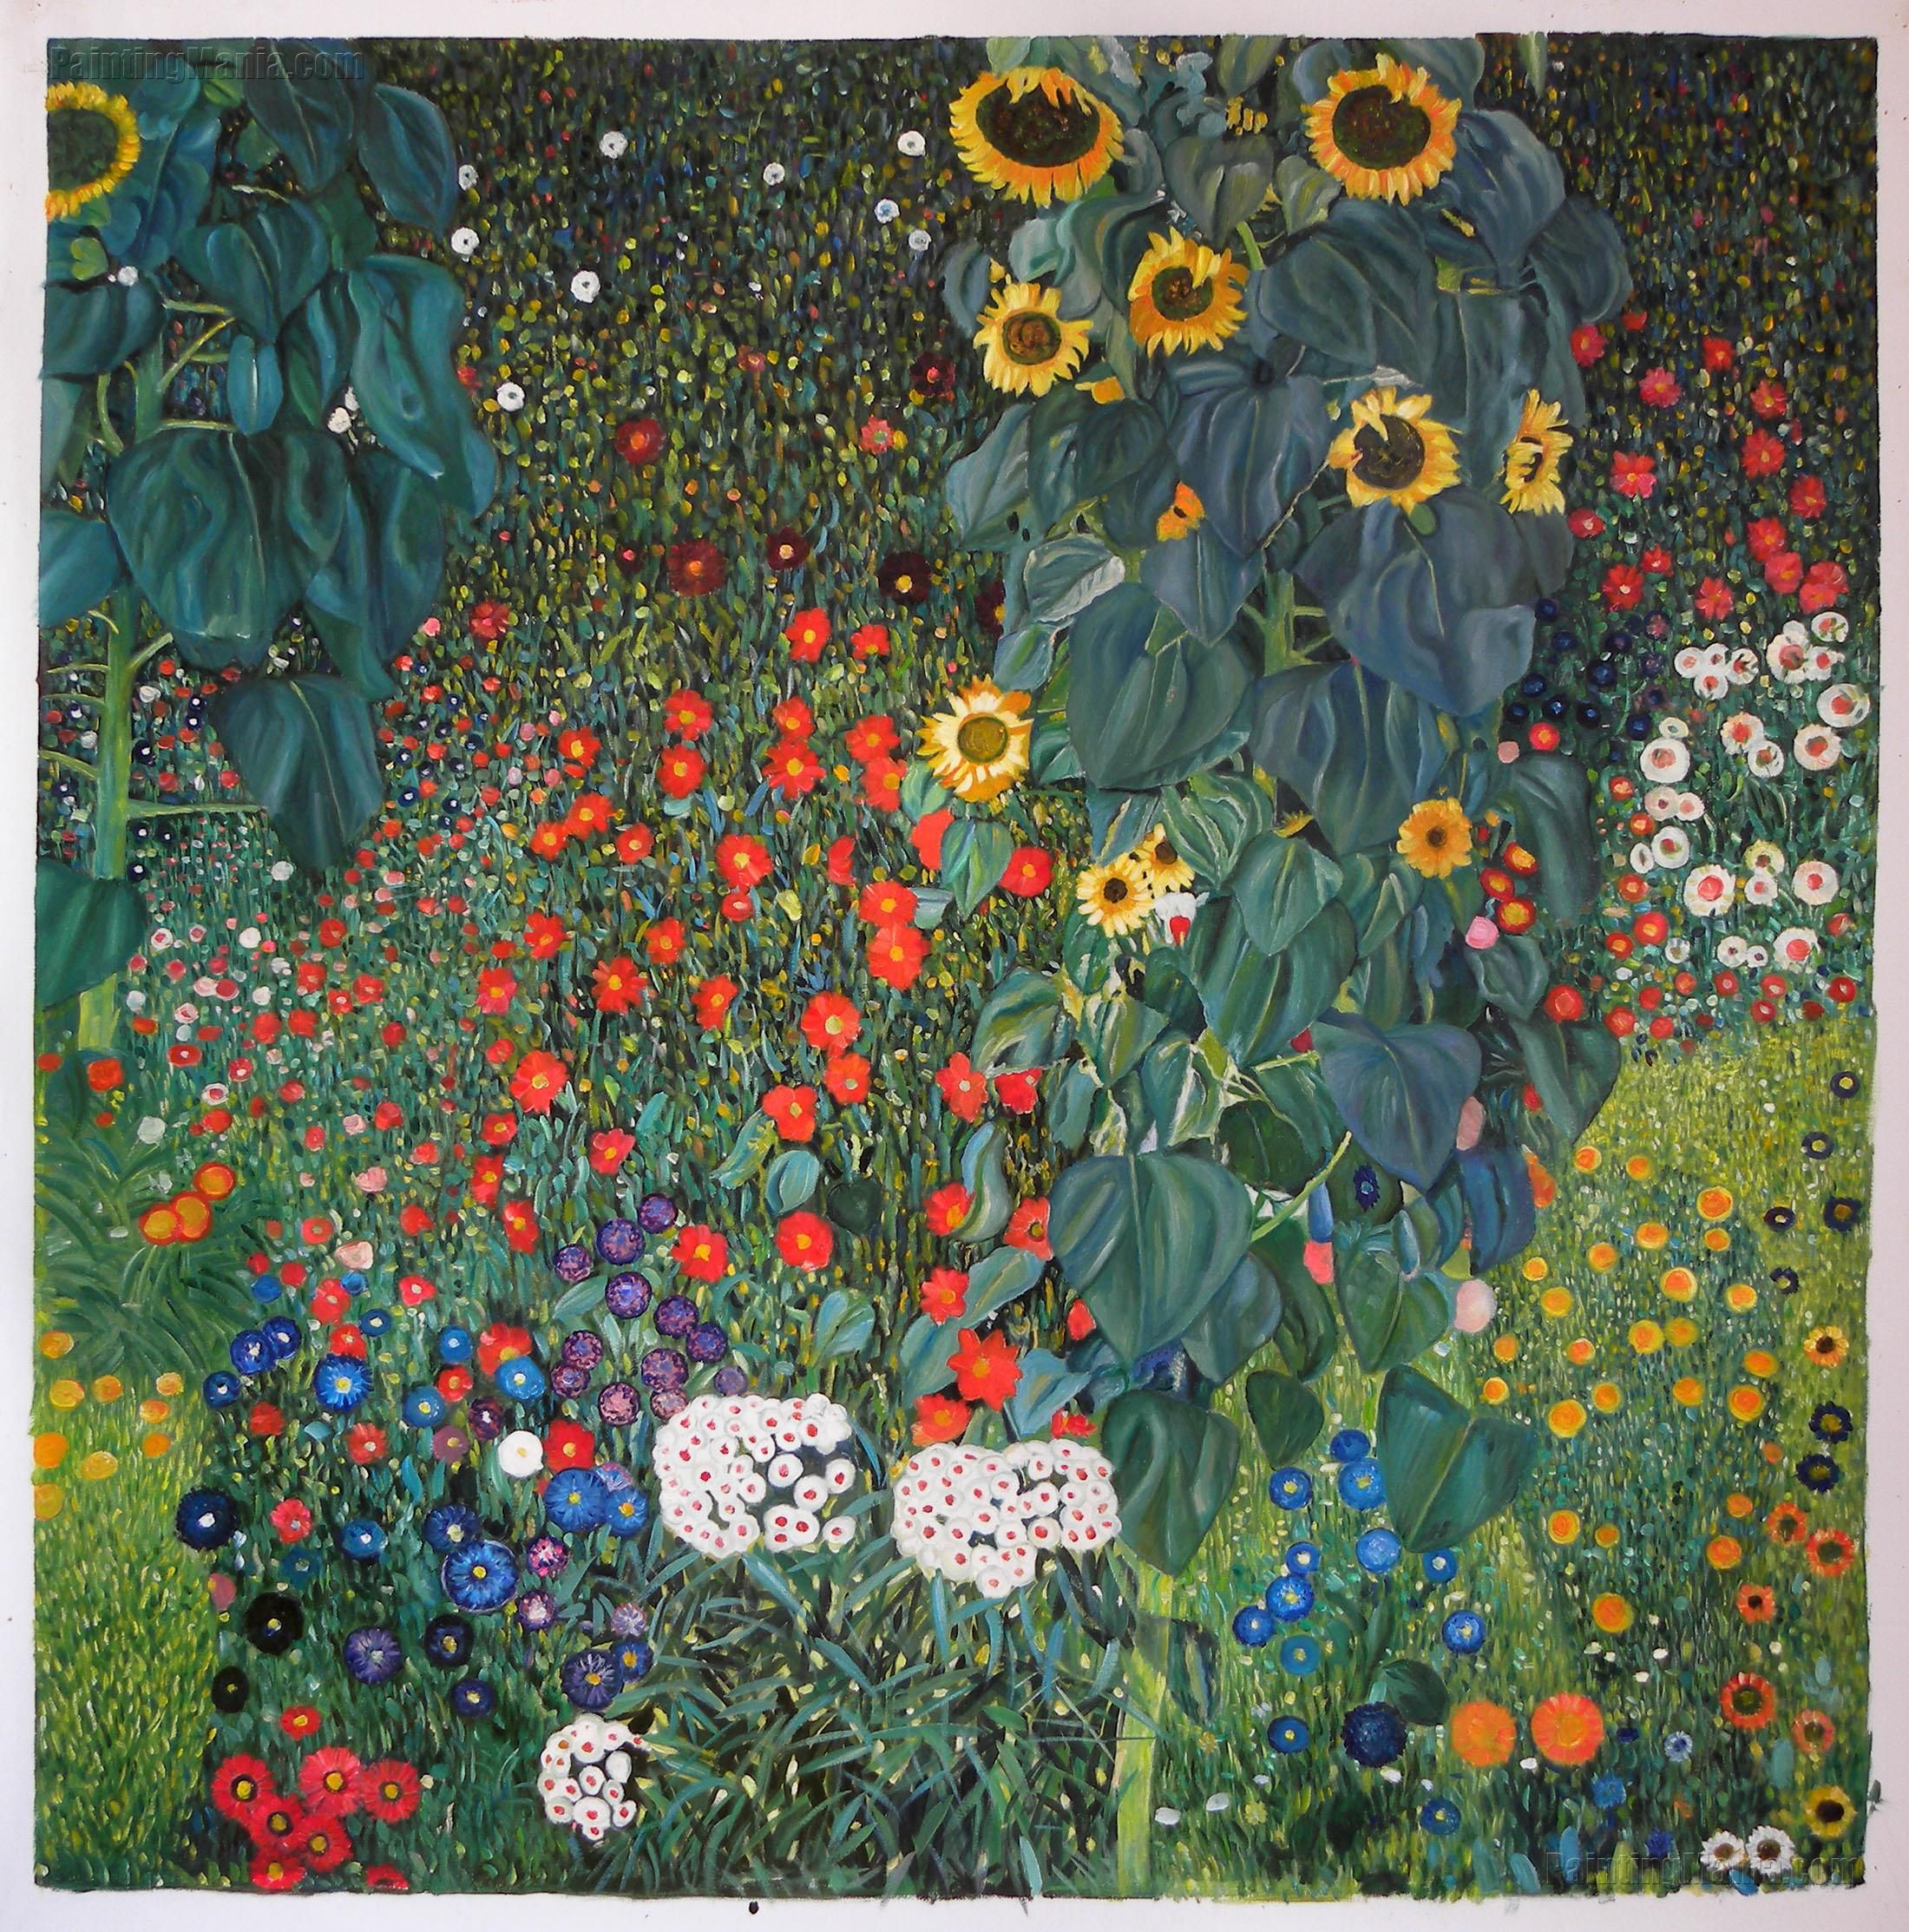 Farm Garden With Sunflowers With Images Gustav Klimt Klimt